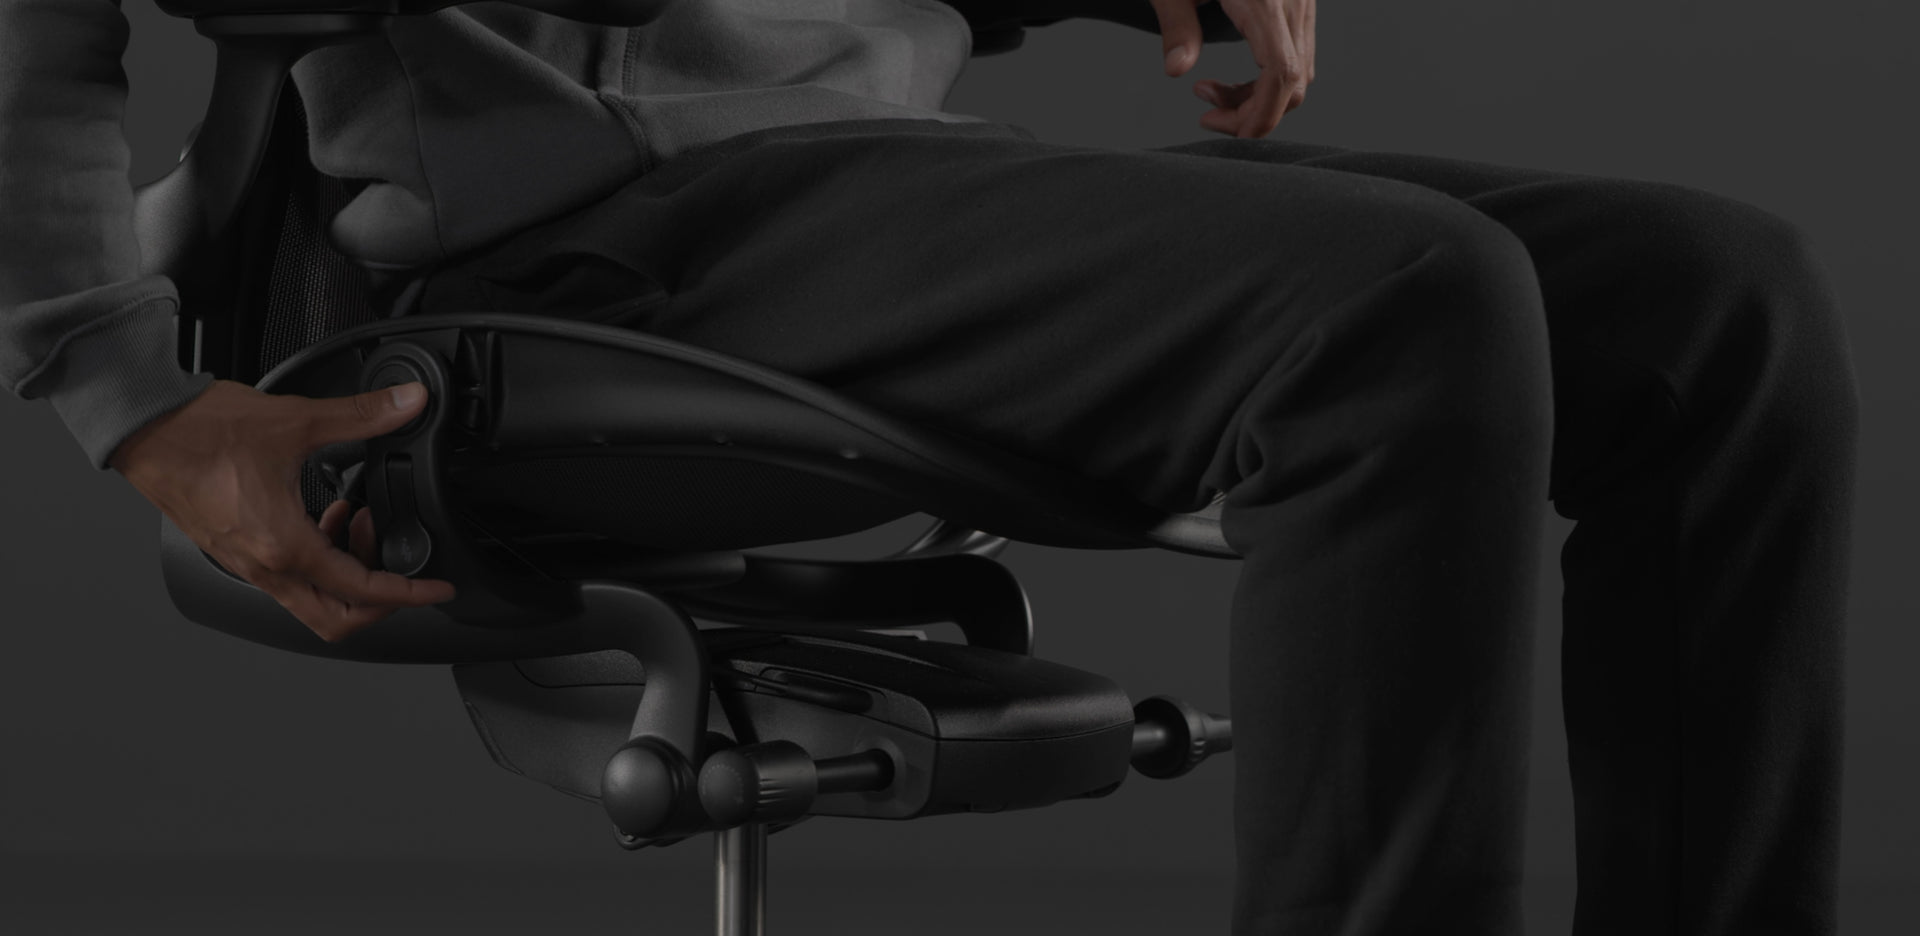 A close-up video of the side of a black Embody Gaming Chair adjustable seat depth mechanism being adjusted by a person in a sweater and trousers.